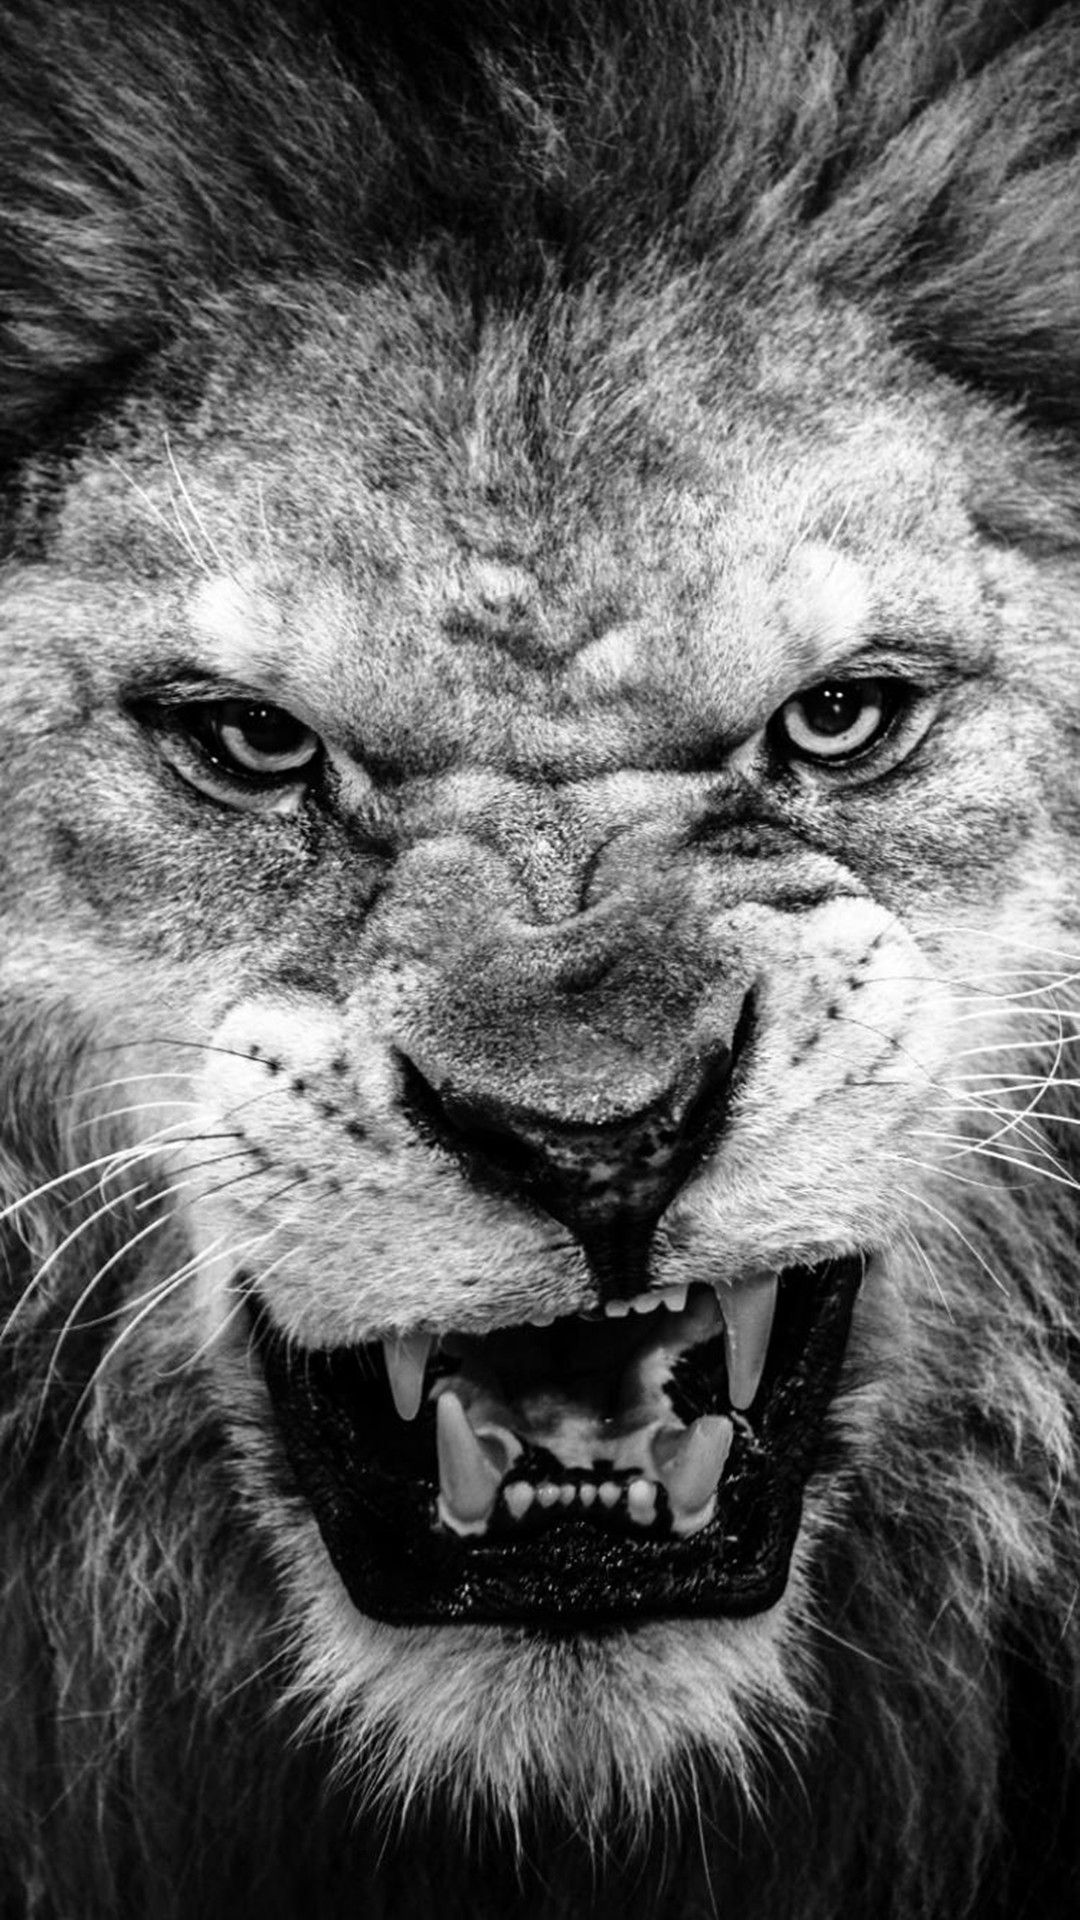 45 Lion Wallpaper Black And White Android Iphone Desktop Hd Backgrounds Wallpapers 1080p 4k 1080x1920 2020